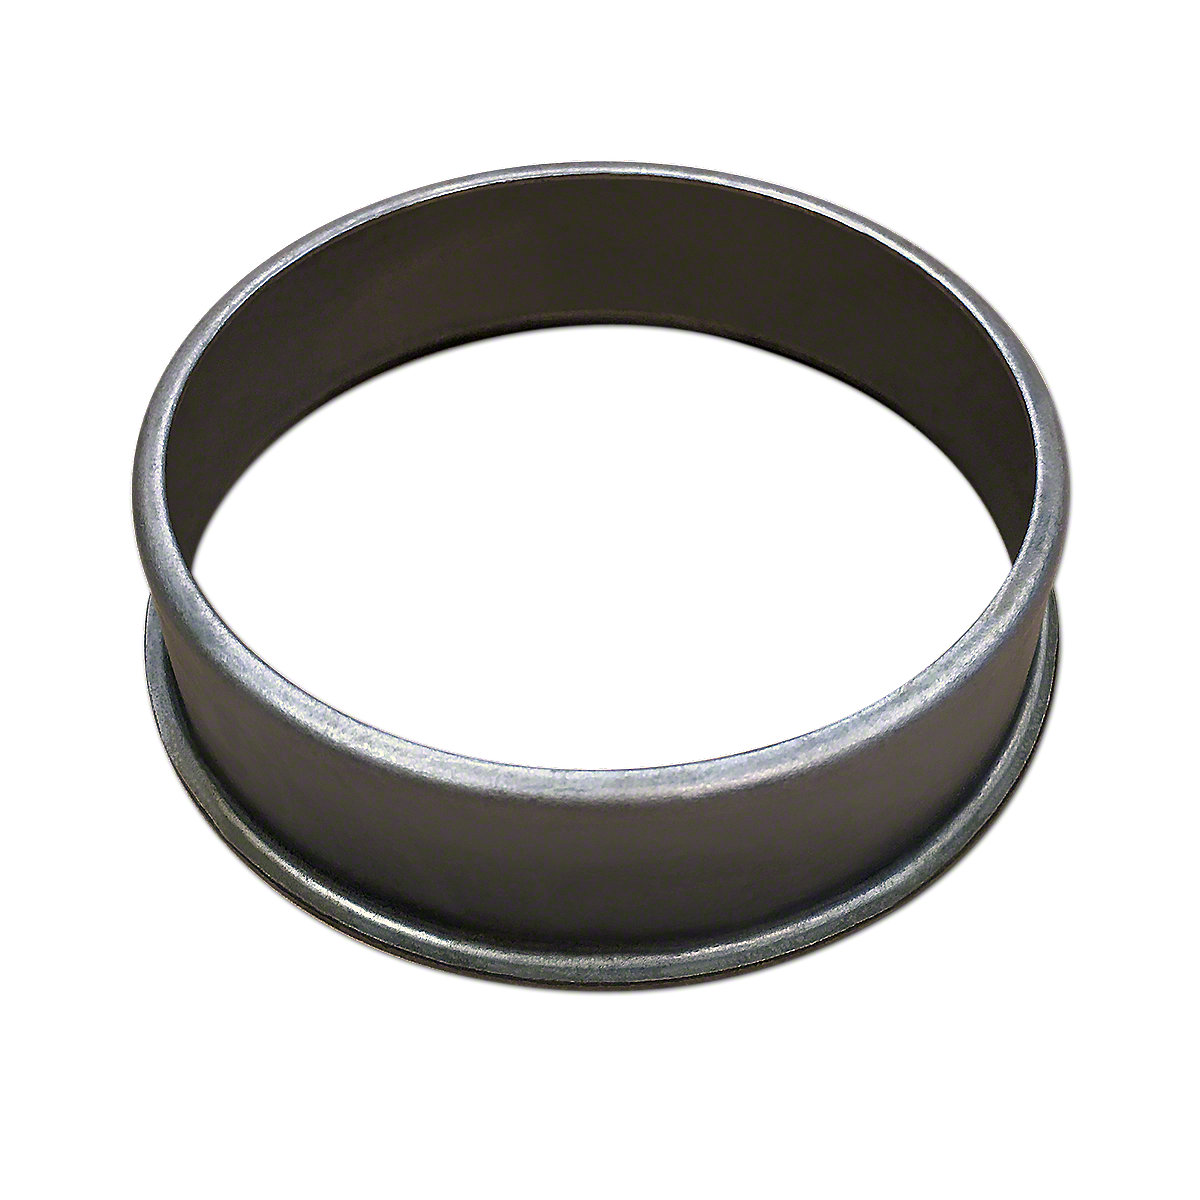 IHS3655Front Wheel Seal Retainer (Wear Sleeve)